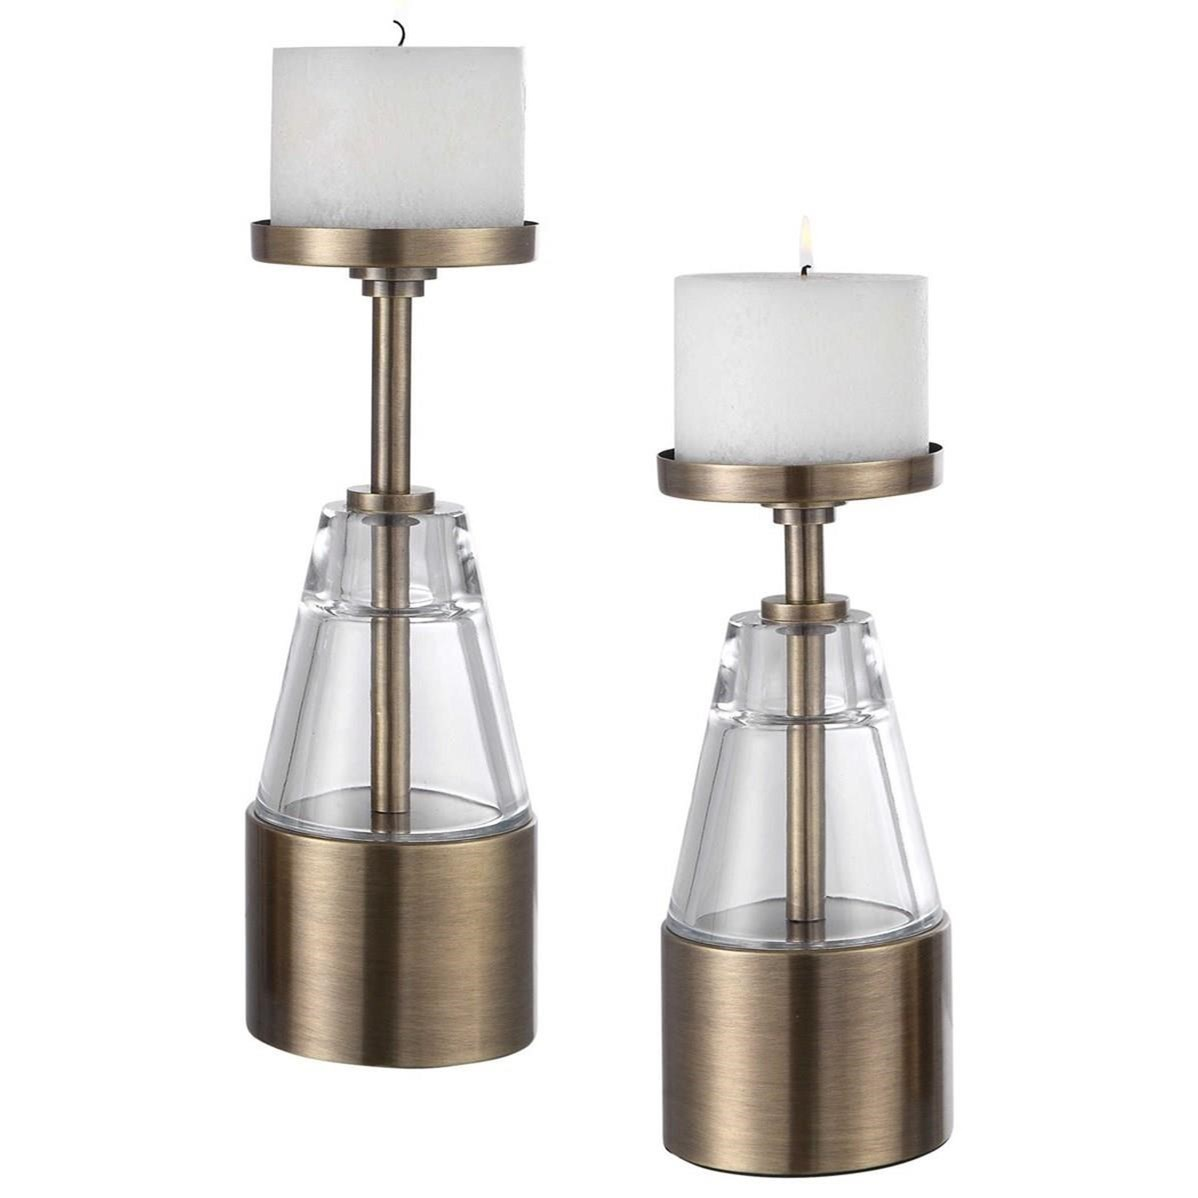 Accessories - Candle Holders Theirry Crystal Candleholders, Set/2 by Uttermost at Mueller Furniture